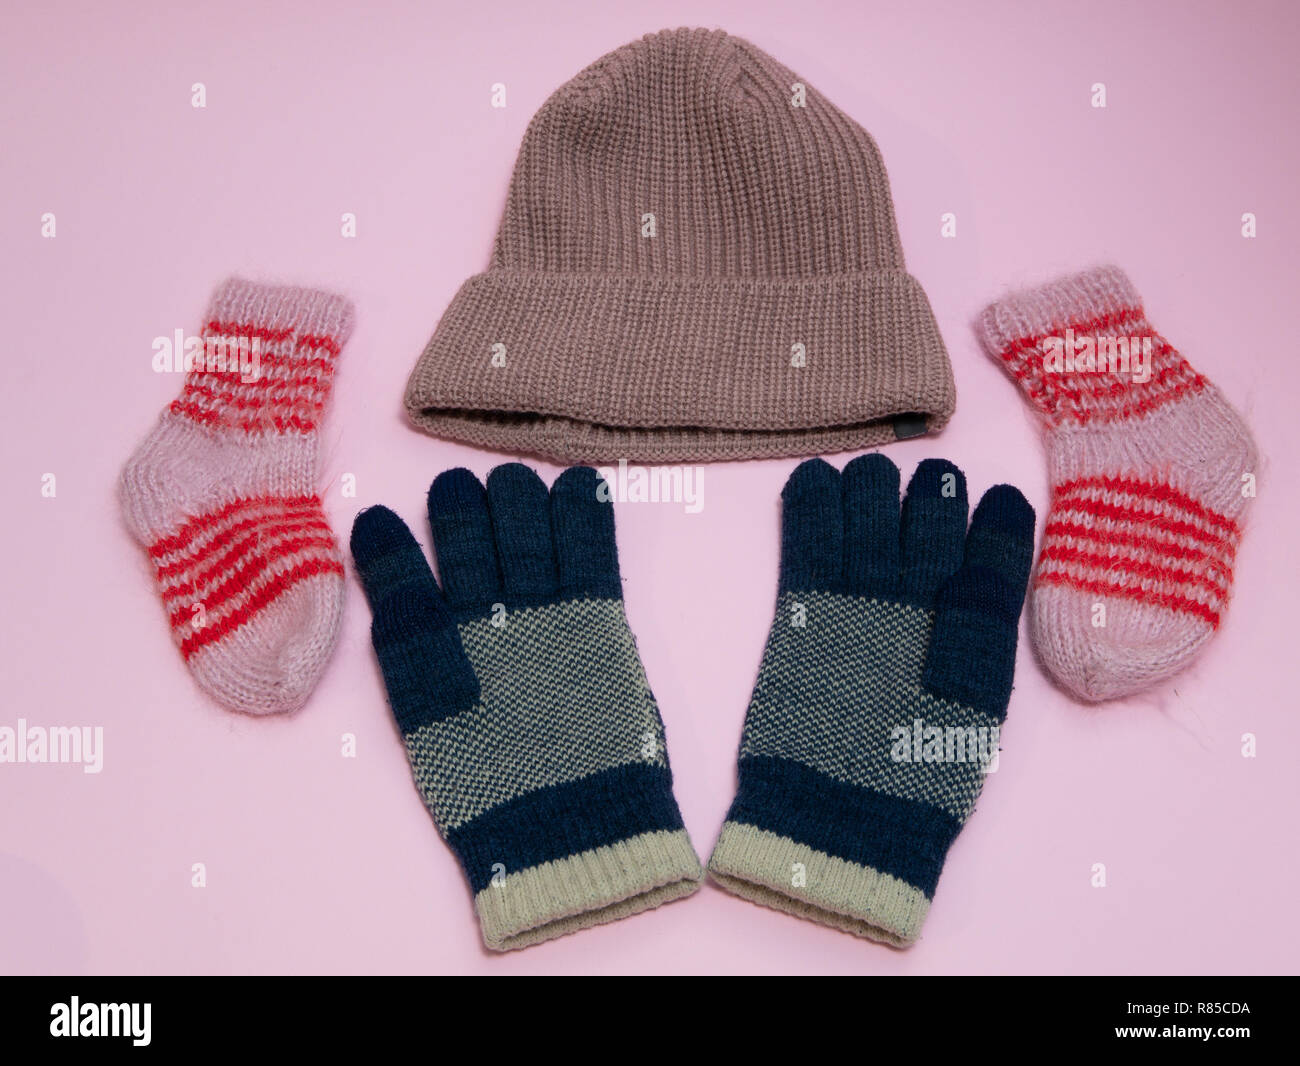 6240b52bc29 set of winter must have cloth accessories - woolen hat